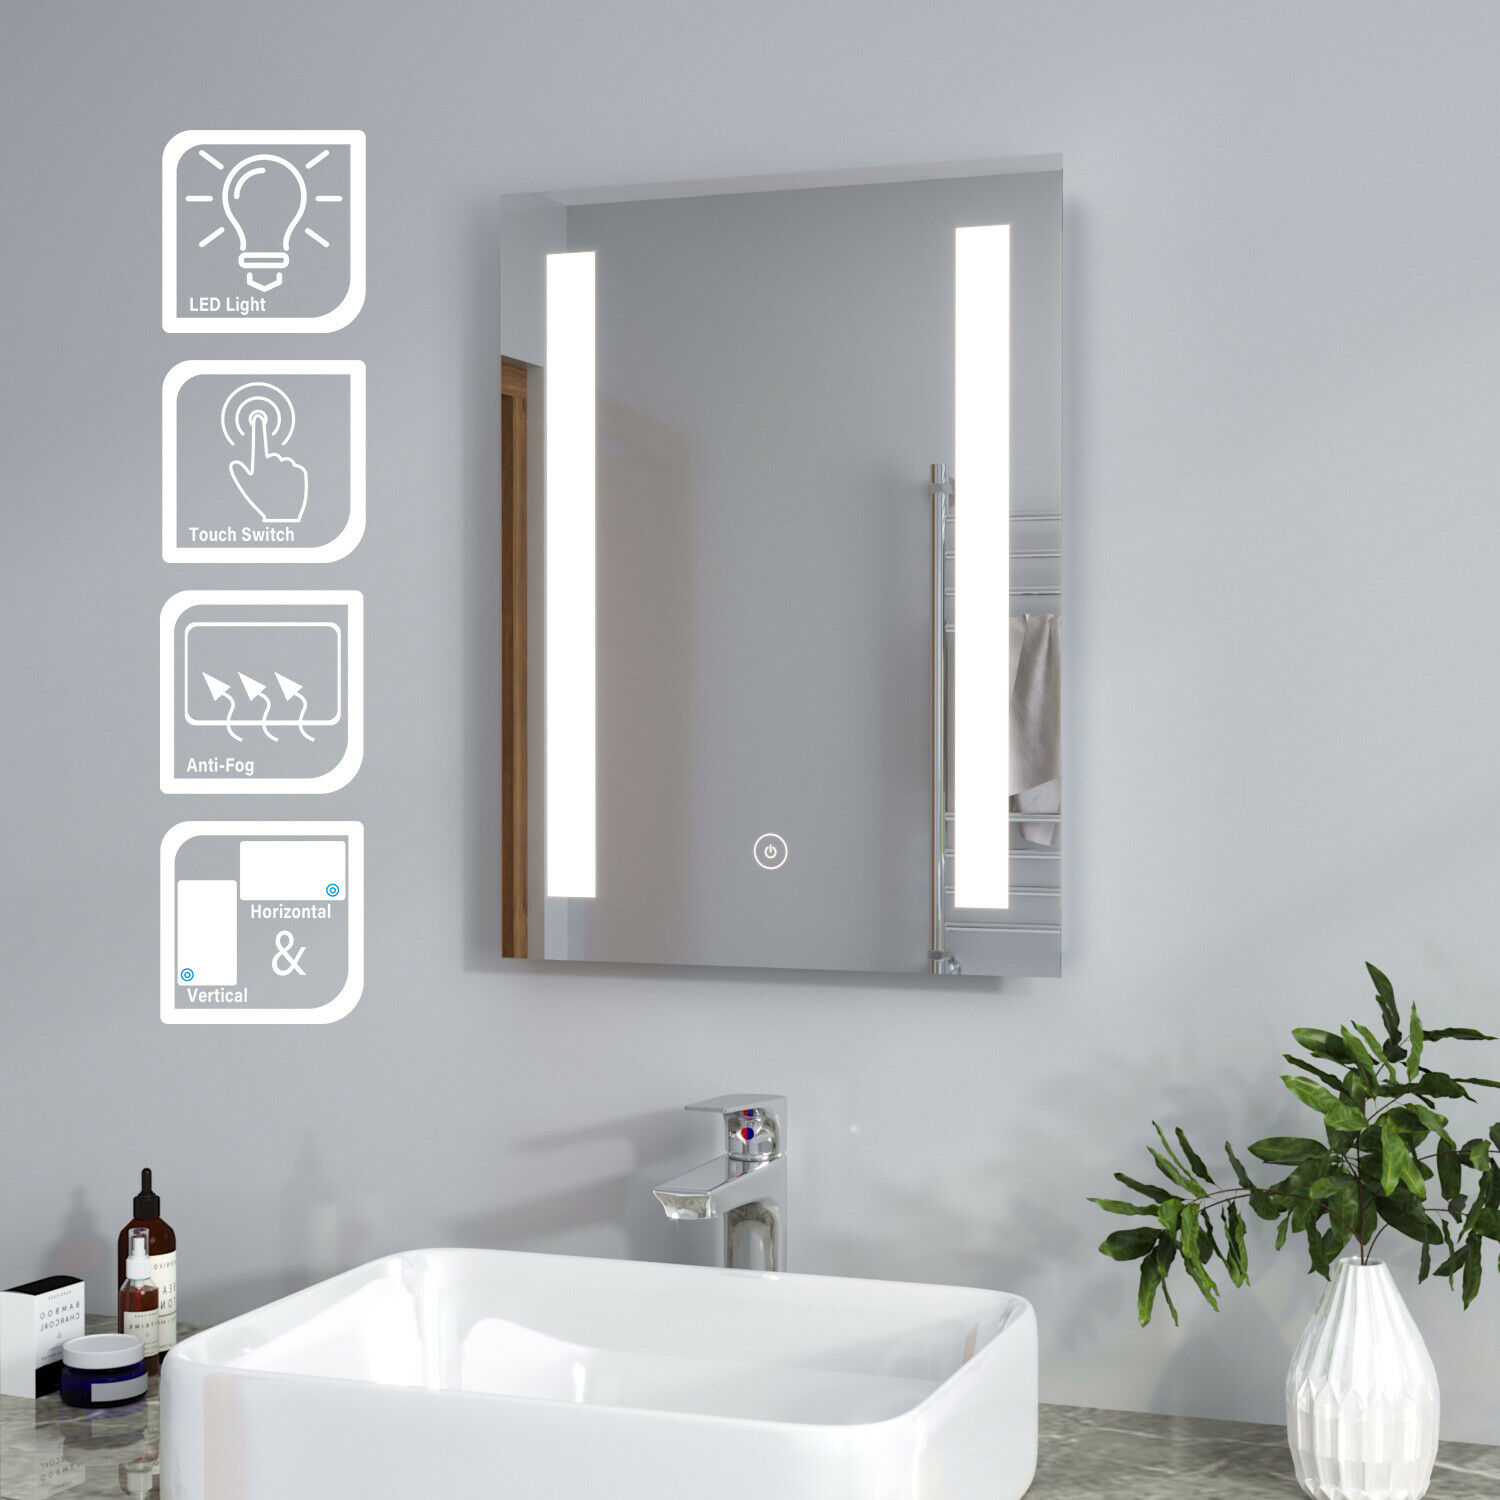 Bathroom Mirror Storage Cabinet Stainless Steel Double Door Shelf Wall Mounted